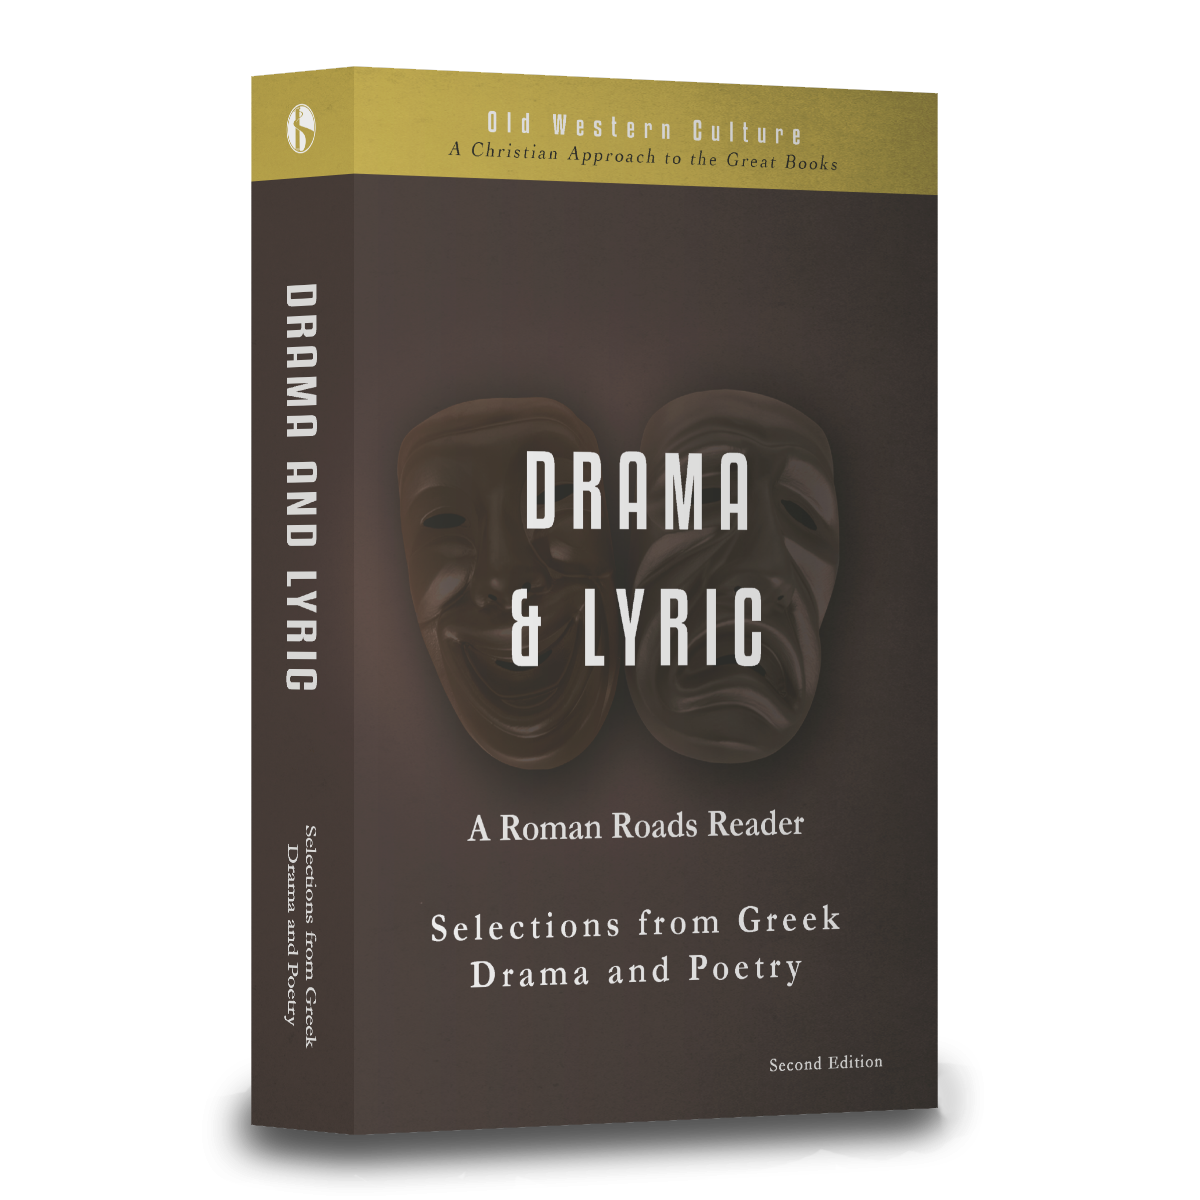 Y1 Q2: Drama and Lyric